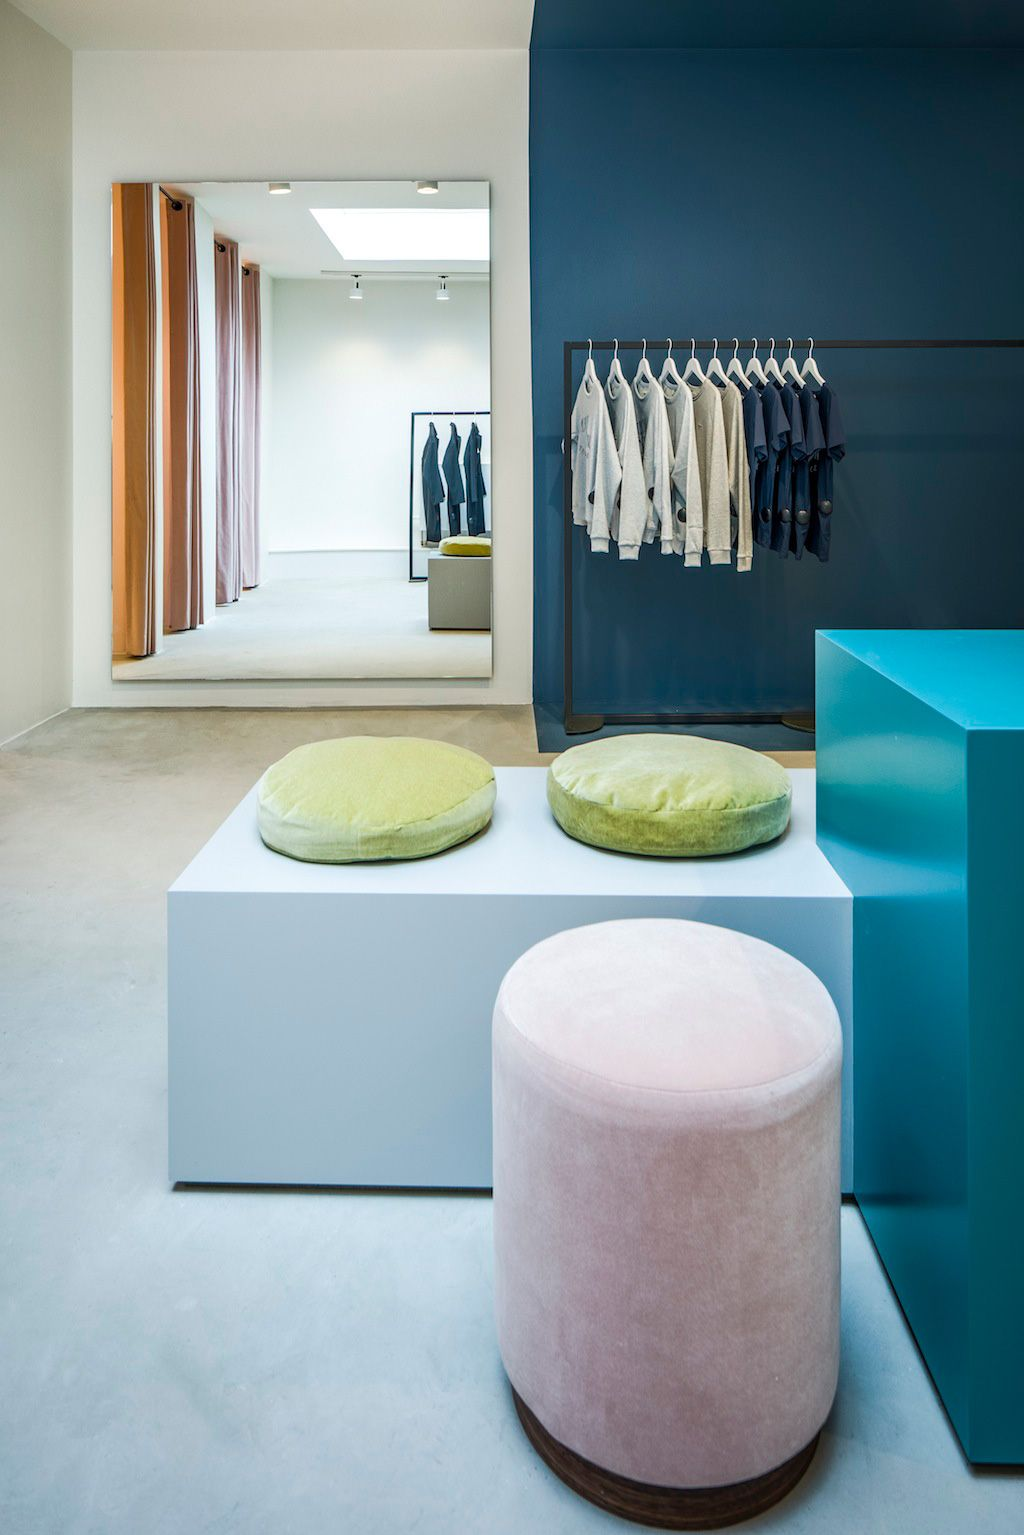 The Pelican Studio in Amsterdam by Framework | Yellowtrace Pastel pink and blue changing room. Retail